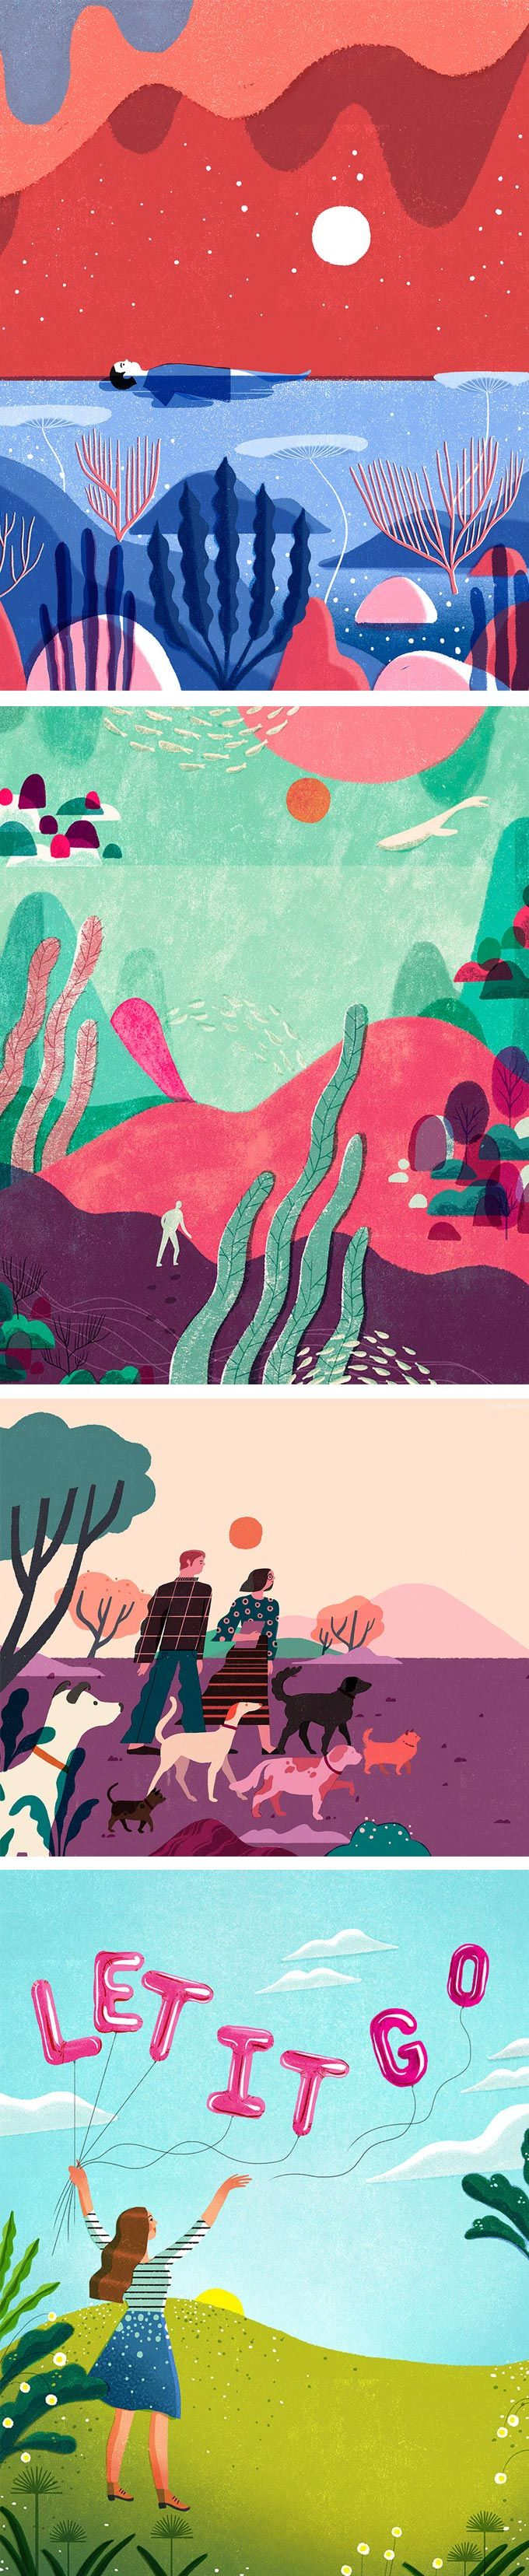 Geraldine Sy creates compositions inspired by the screen printing technique. Fields of distress-textured hues overlap and produce an off-registered effect.